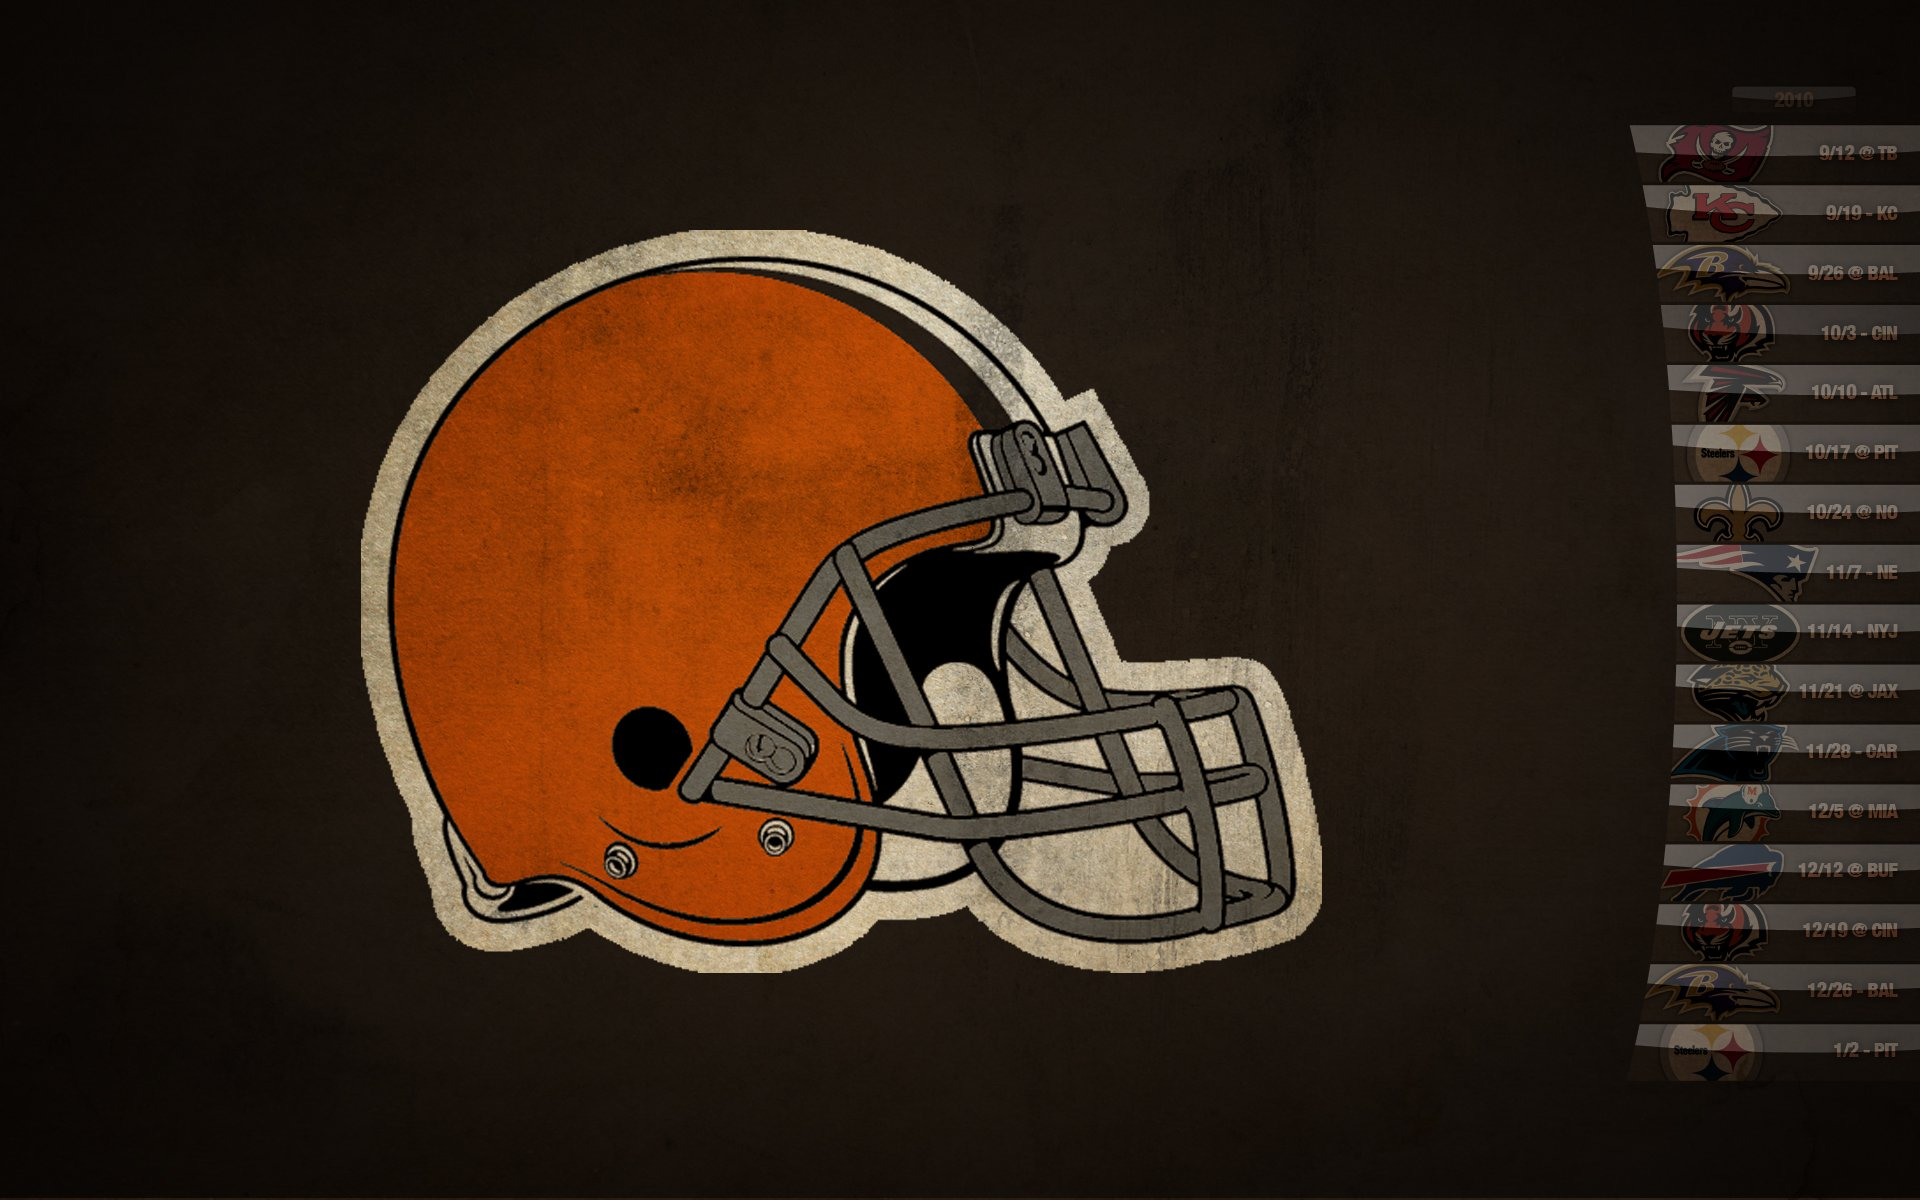 wallpaper browns desktop background collection ultimate 1920x1200 1920x1200